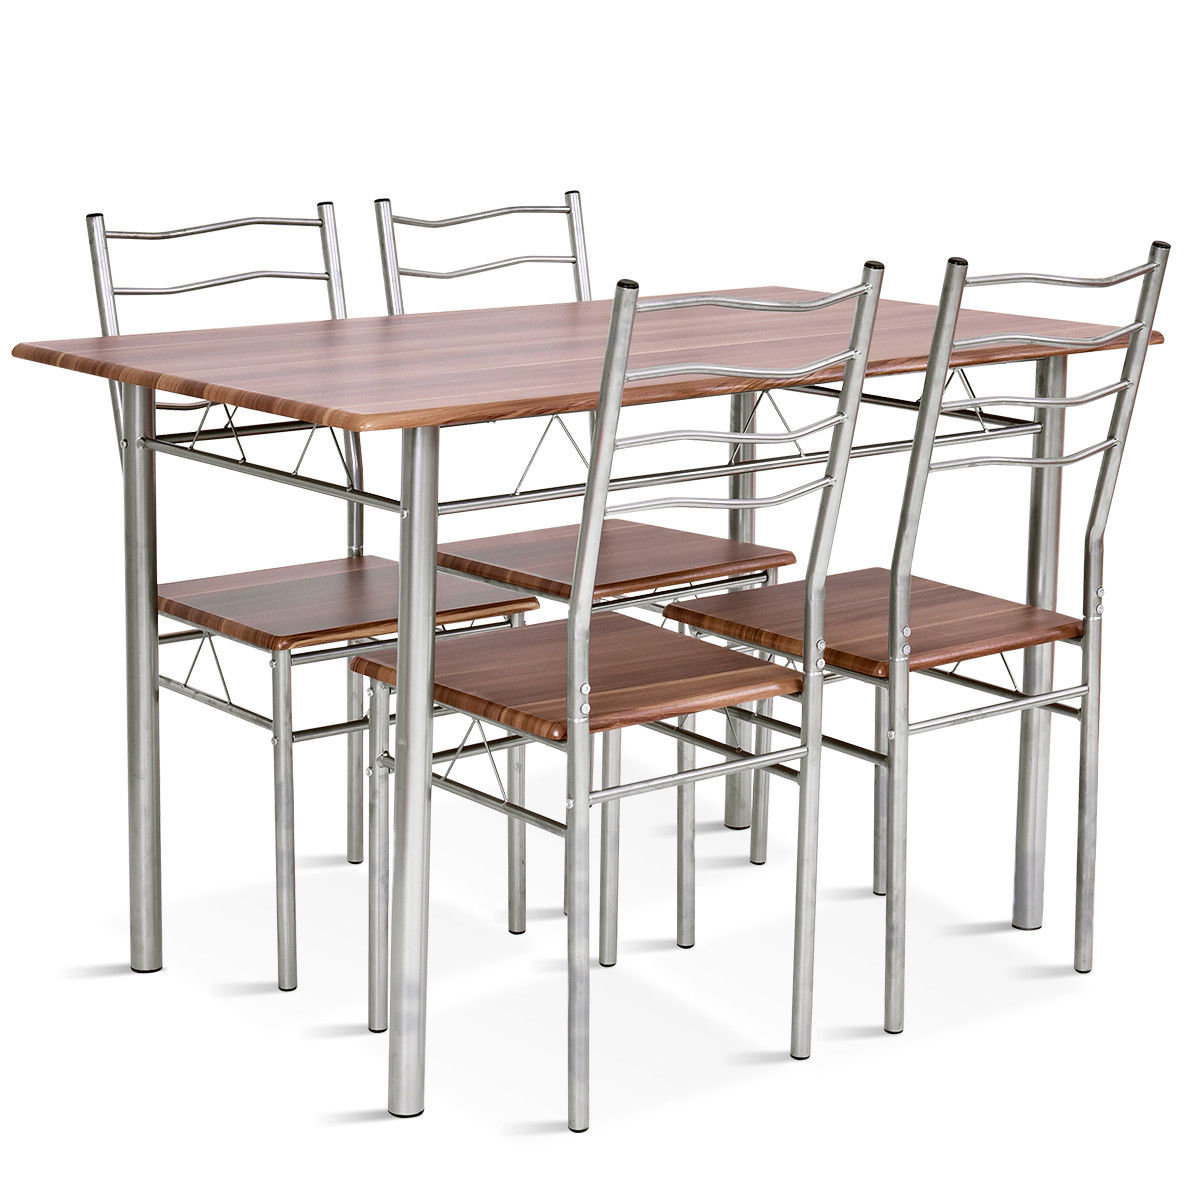 Wayfair With Regard To Fashionable Kieffer 5 Piece Dining Sets (View 23 of 25)